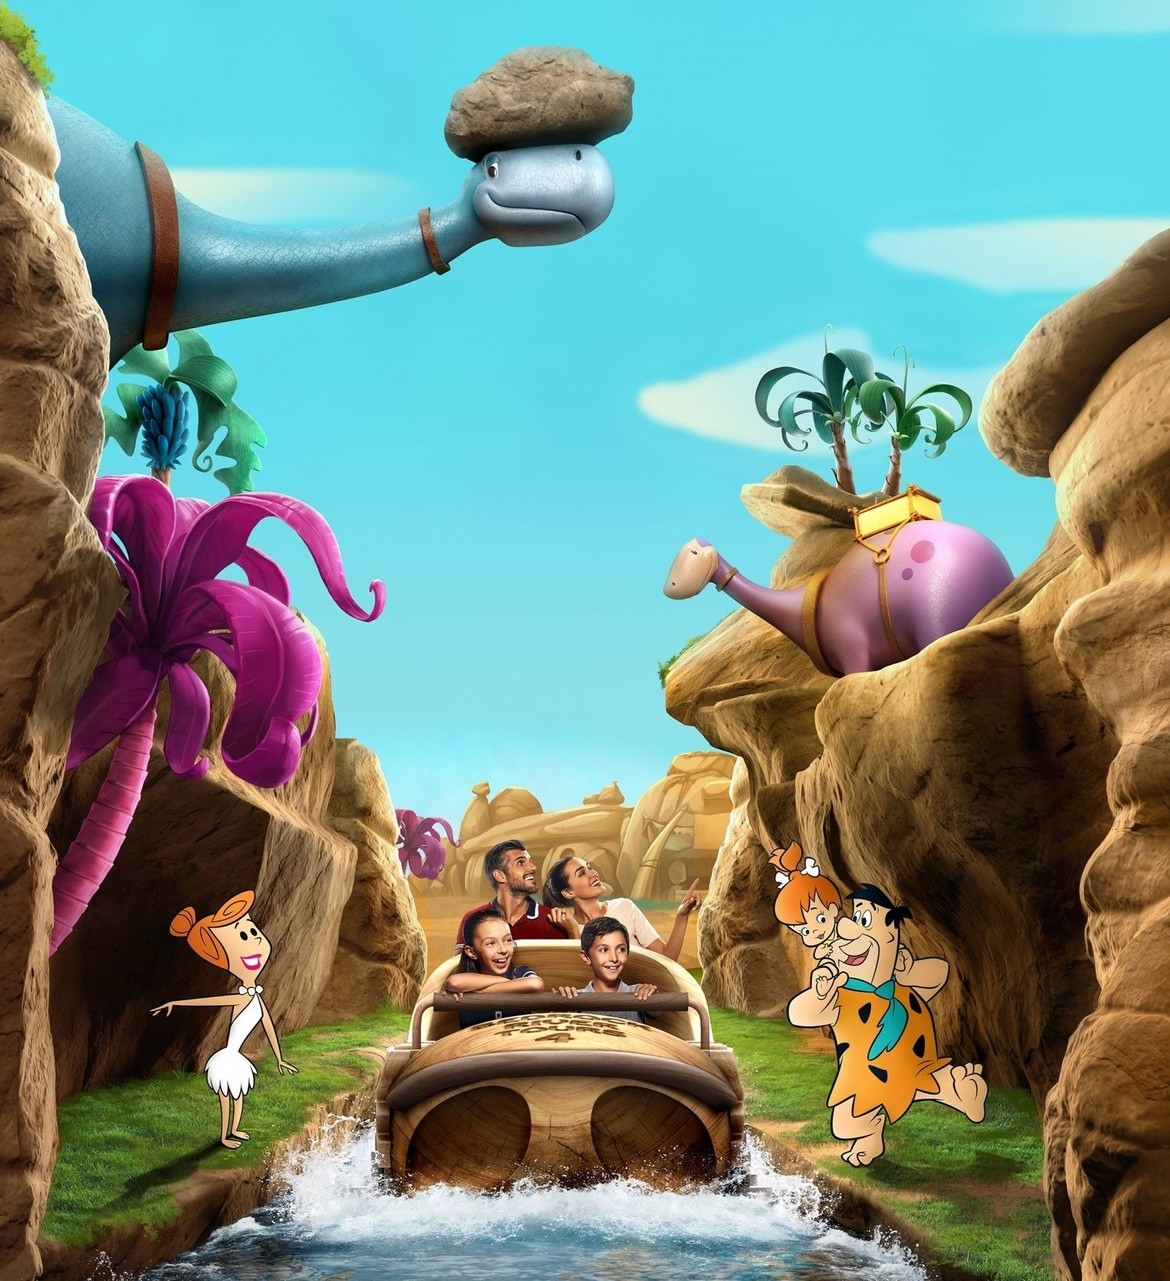 Flinstones bedrock River Adventure Warner Bros.